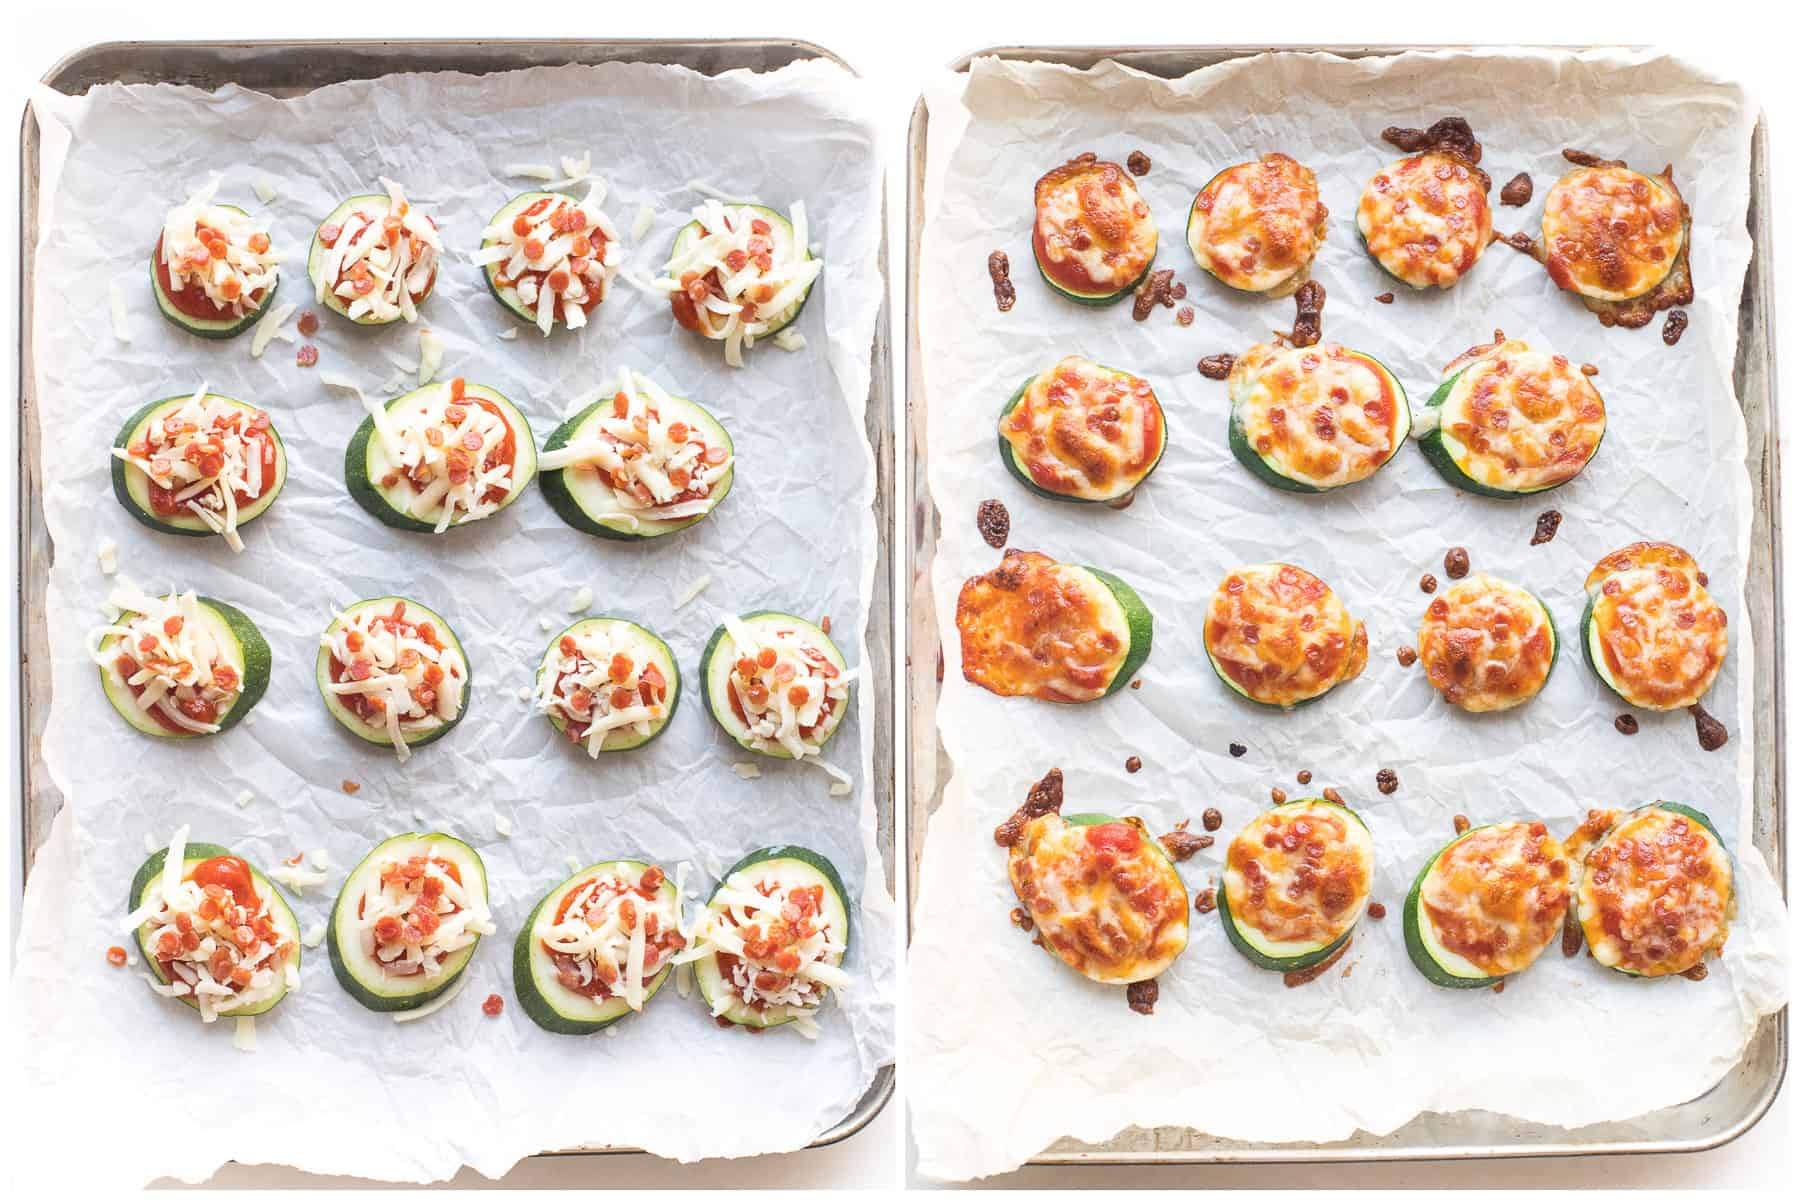 before and after of making keto mini zucchini pizza bites on a white background